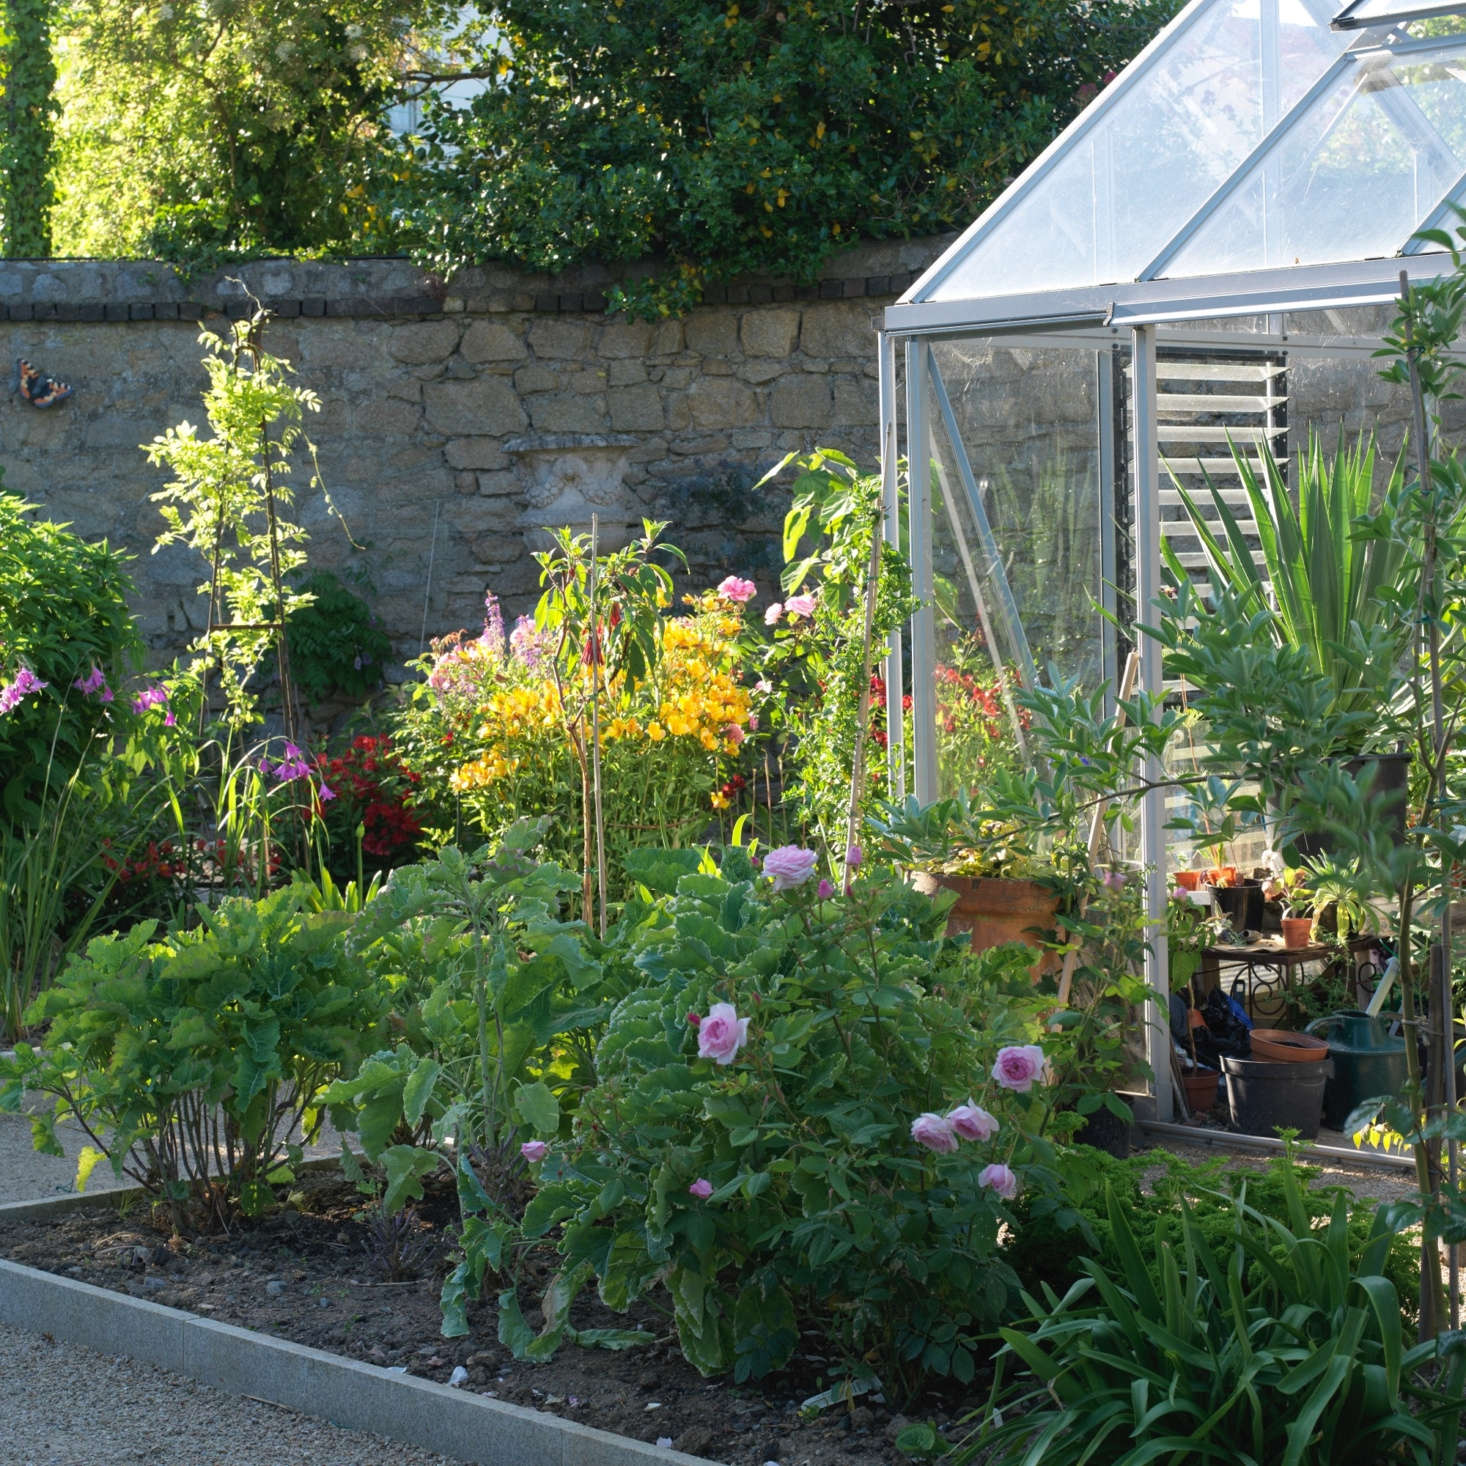 A glasshouse provides an extra layer of protection for tender tropical plants.